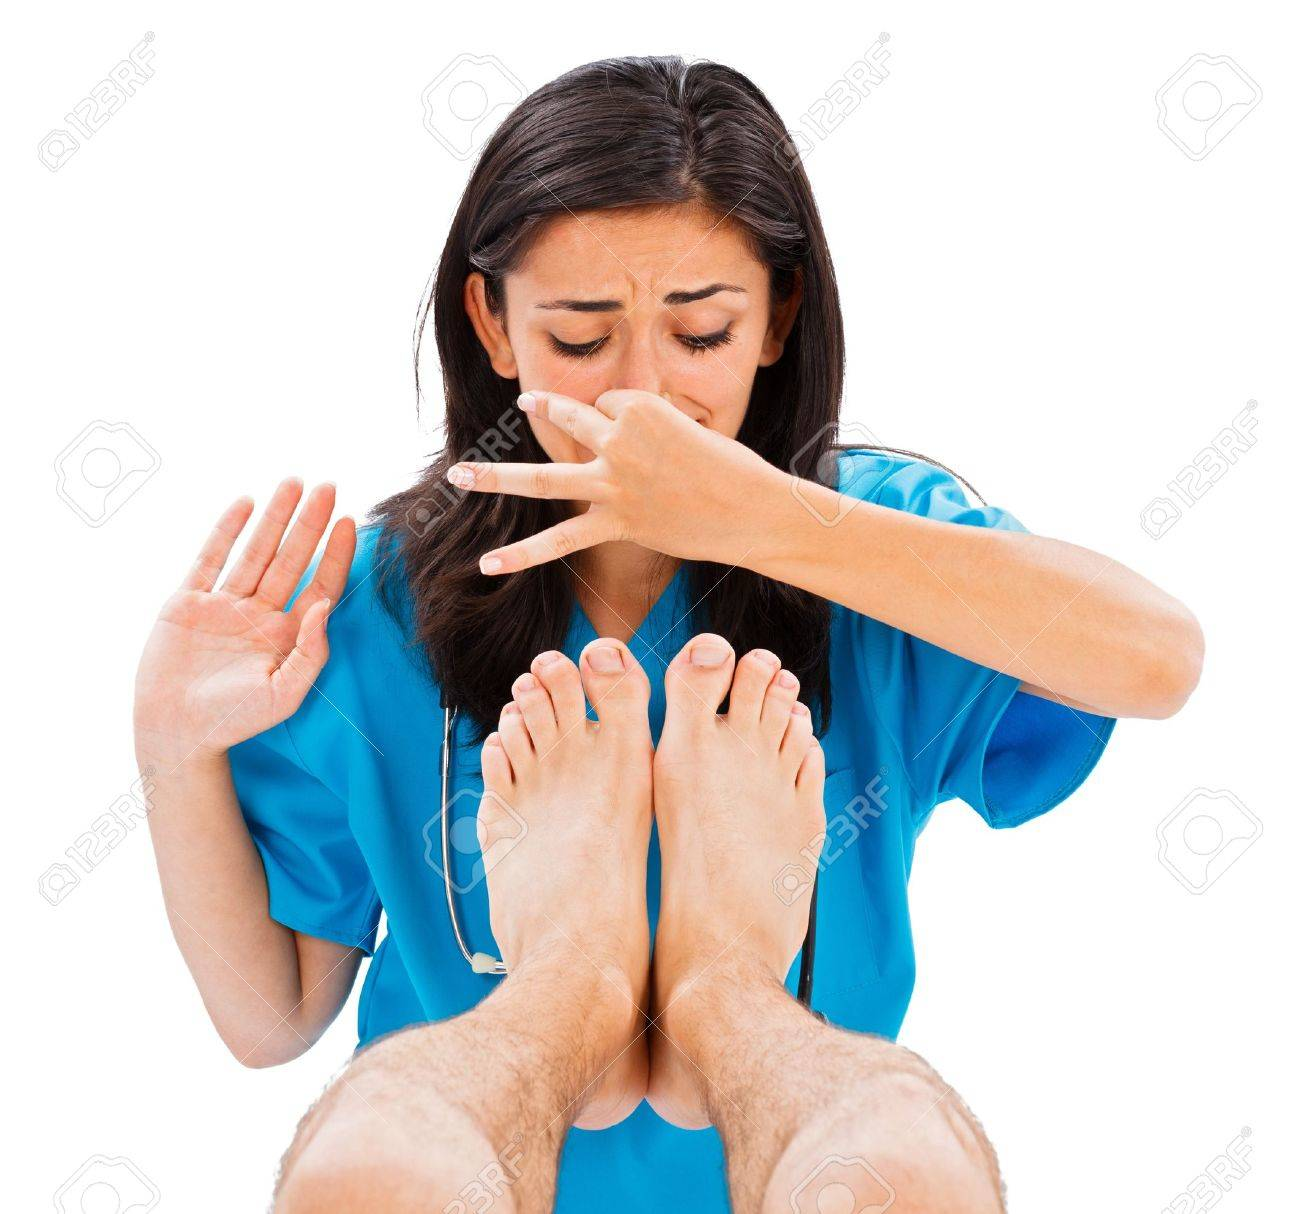 Female doctor holding her nose not to smell the man's stinky feet - isolated image. Stock Photo - 21829608